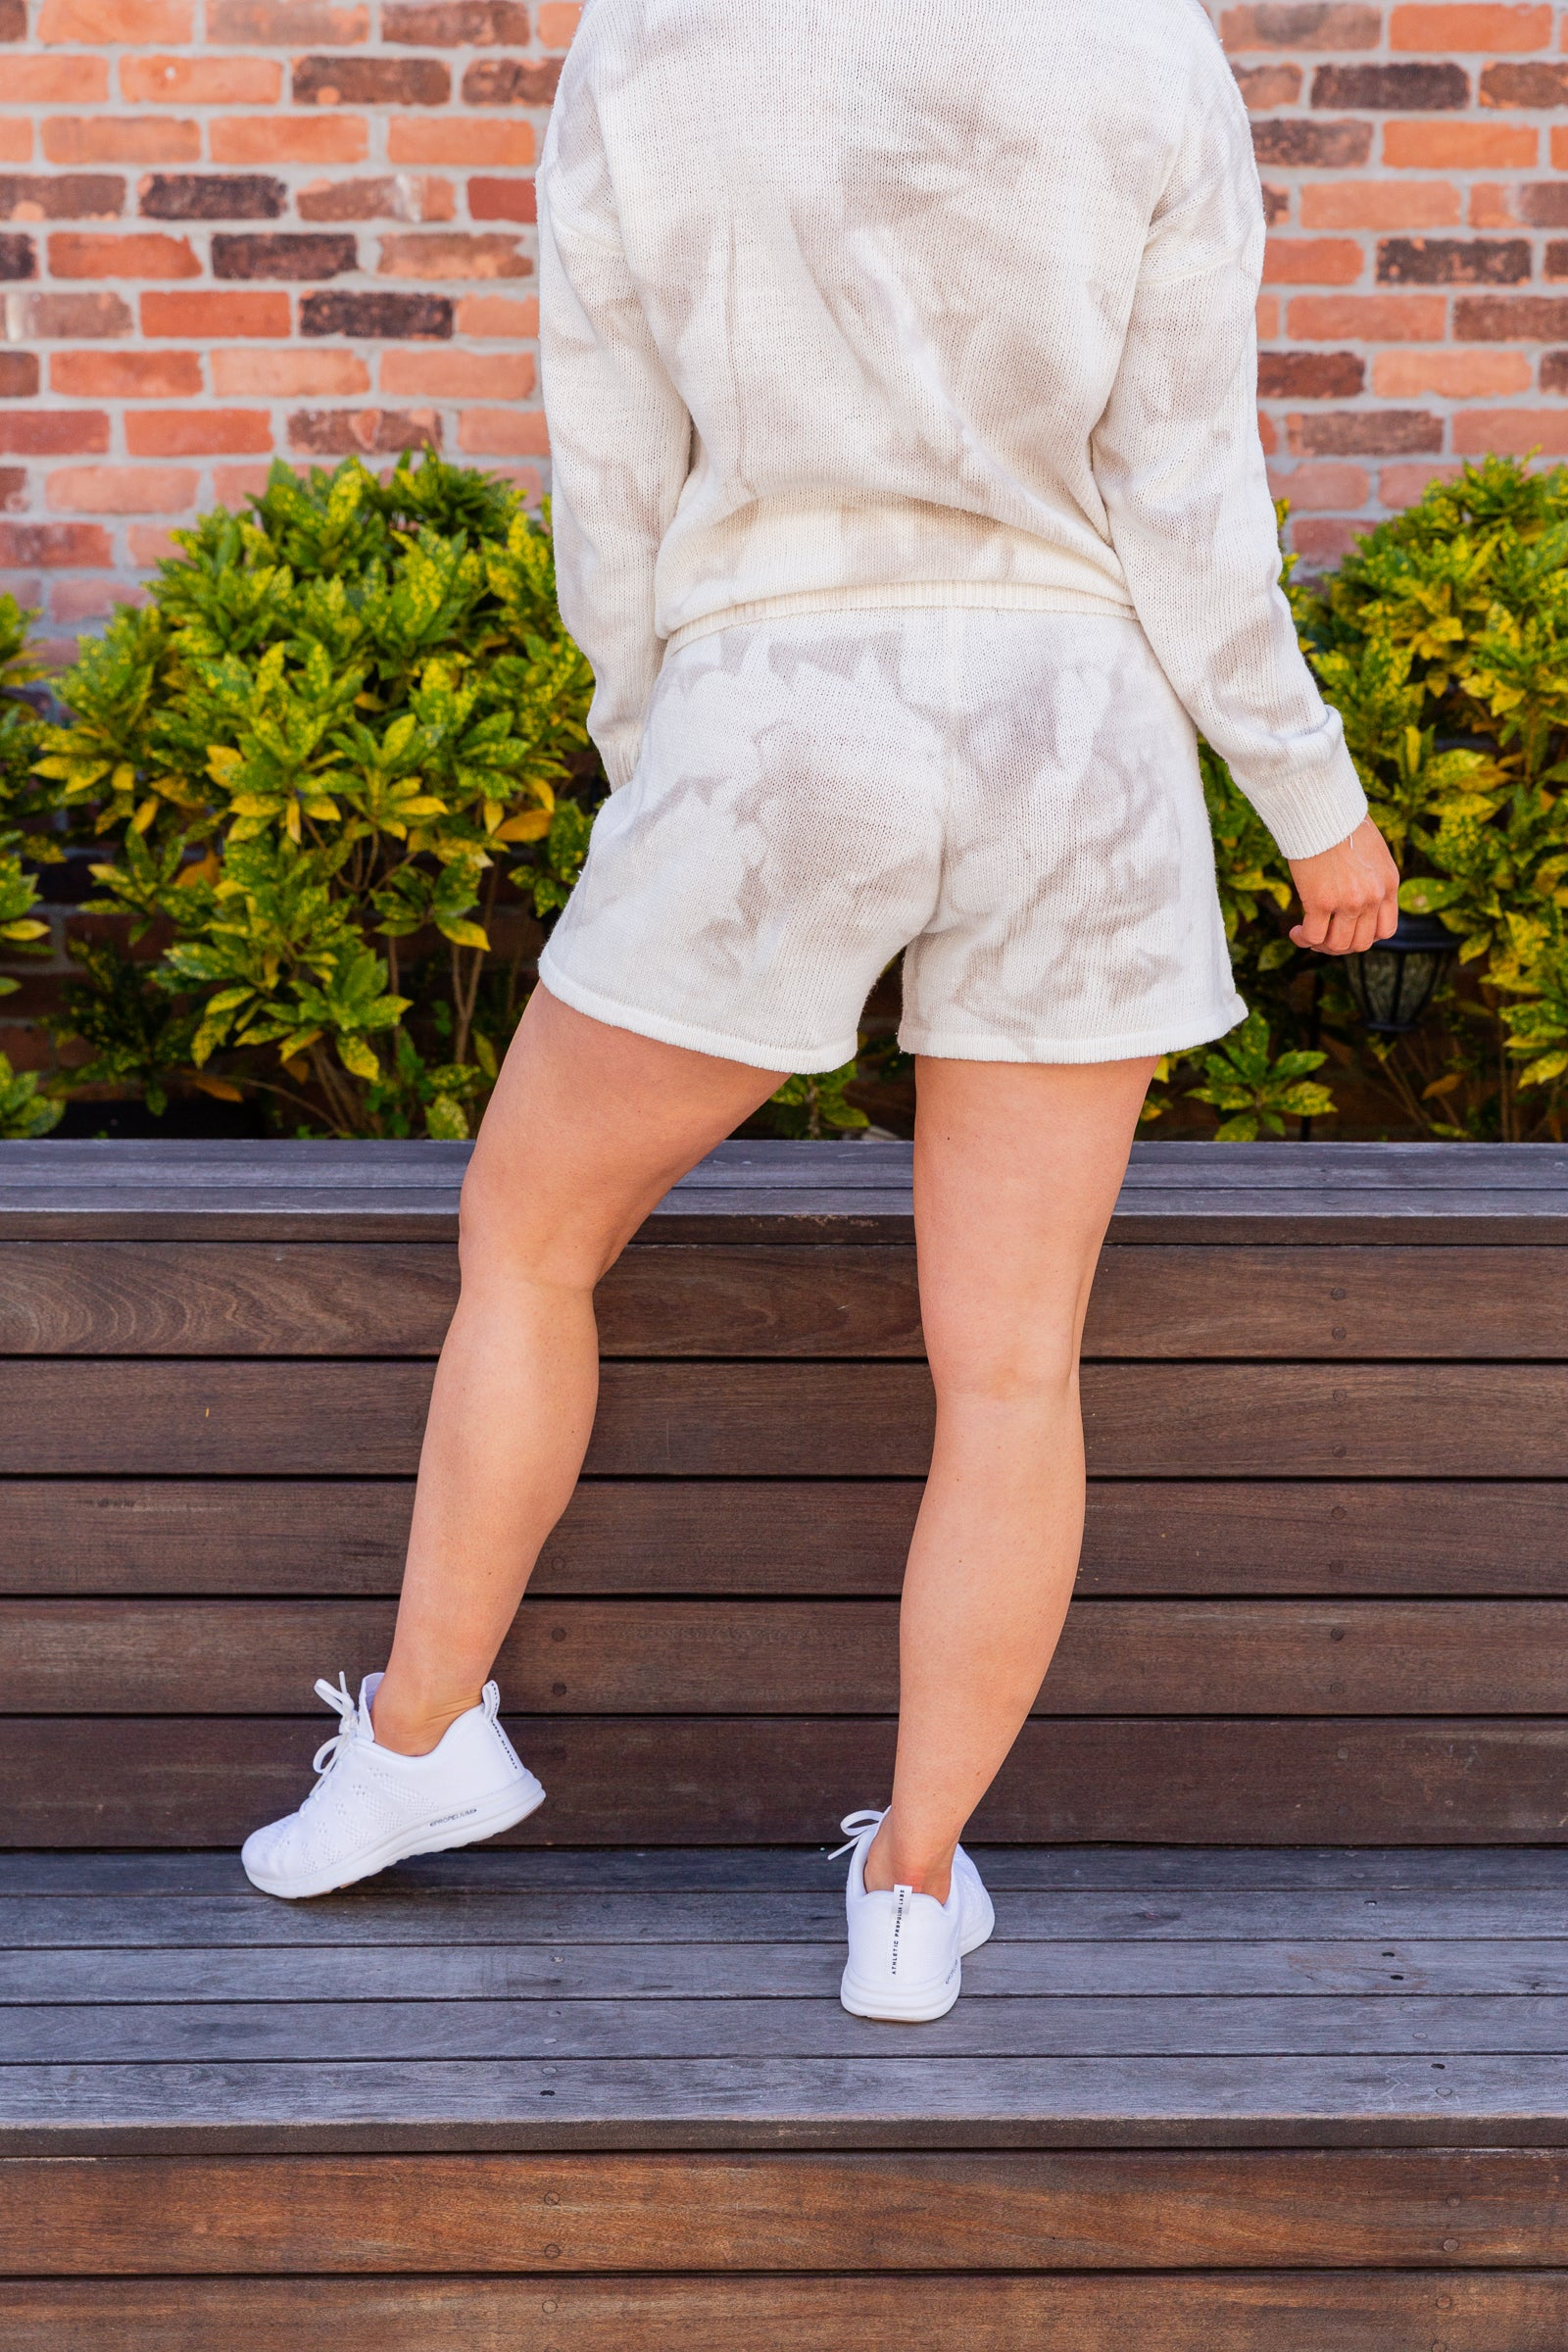 Taupe tie-dye prints cover the fabric of these lounge shorts. These comfy shorts have an elastic drawstring tied waistband that goes into oversized knit shorts.